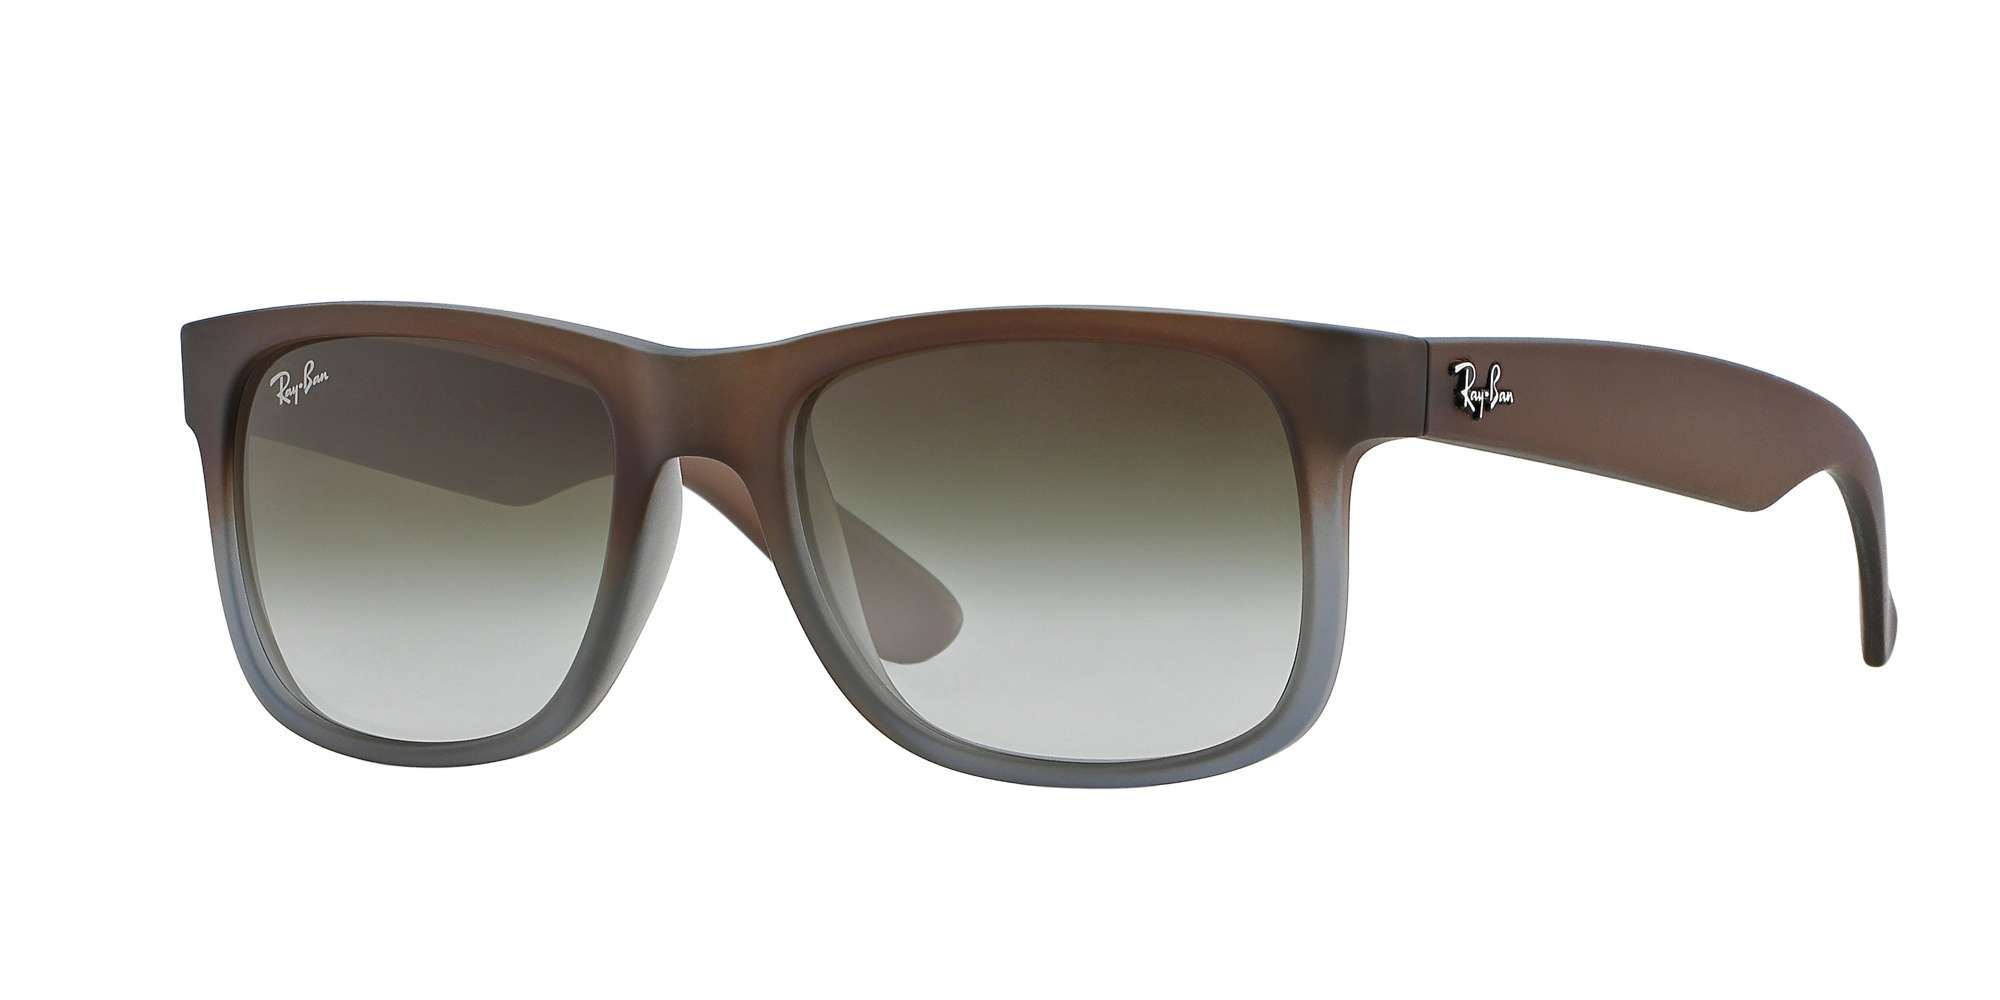 RUBBER BROWN ON GREY / GREEN GRADIENT lenses